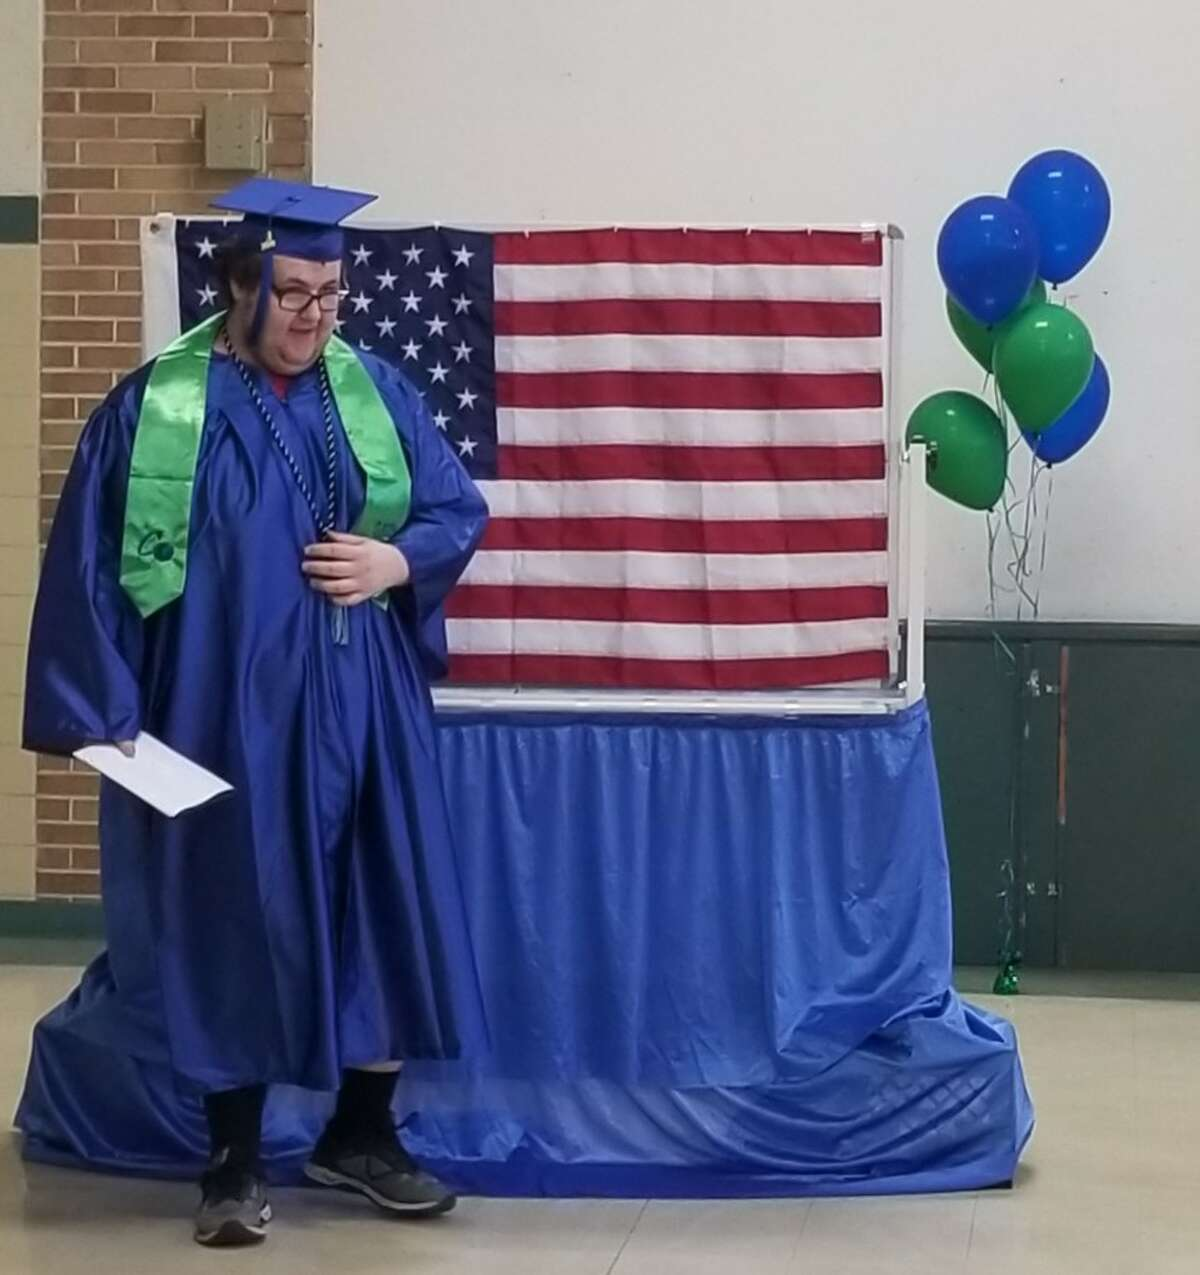 CASMAN Academy honored 15 students during its commencement ceremony at the school on June 10, 2020.